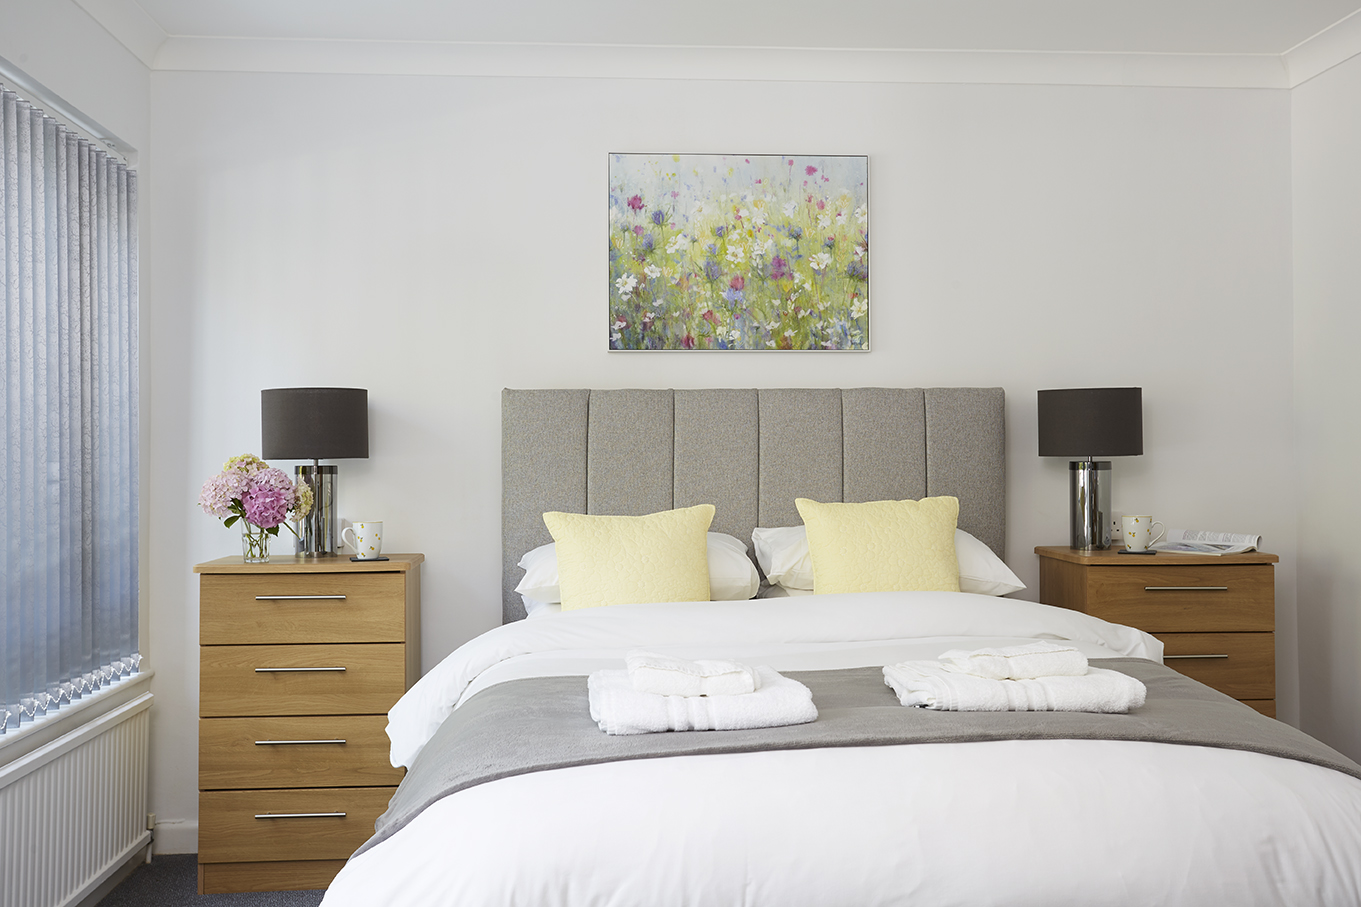 Chine Court Holiday Apartment, Master Bed, Shanklin, Isle of Wight